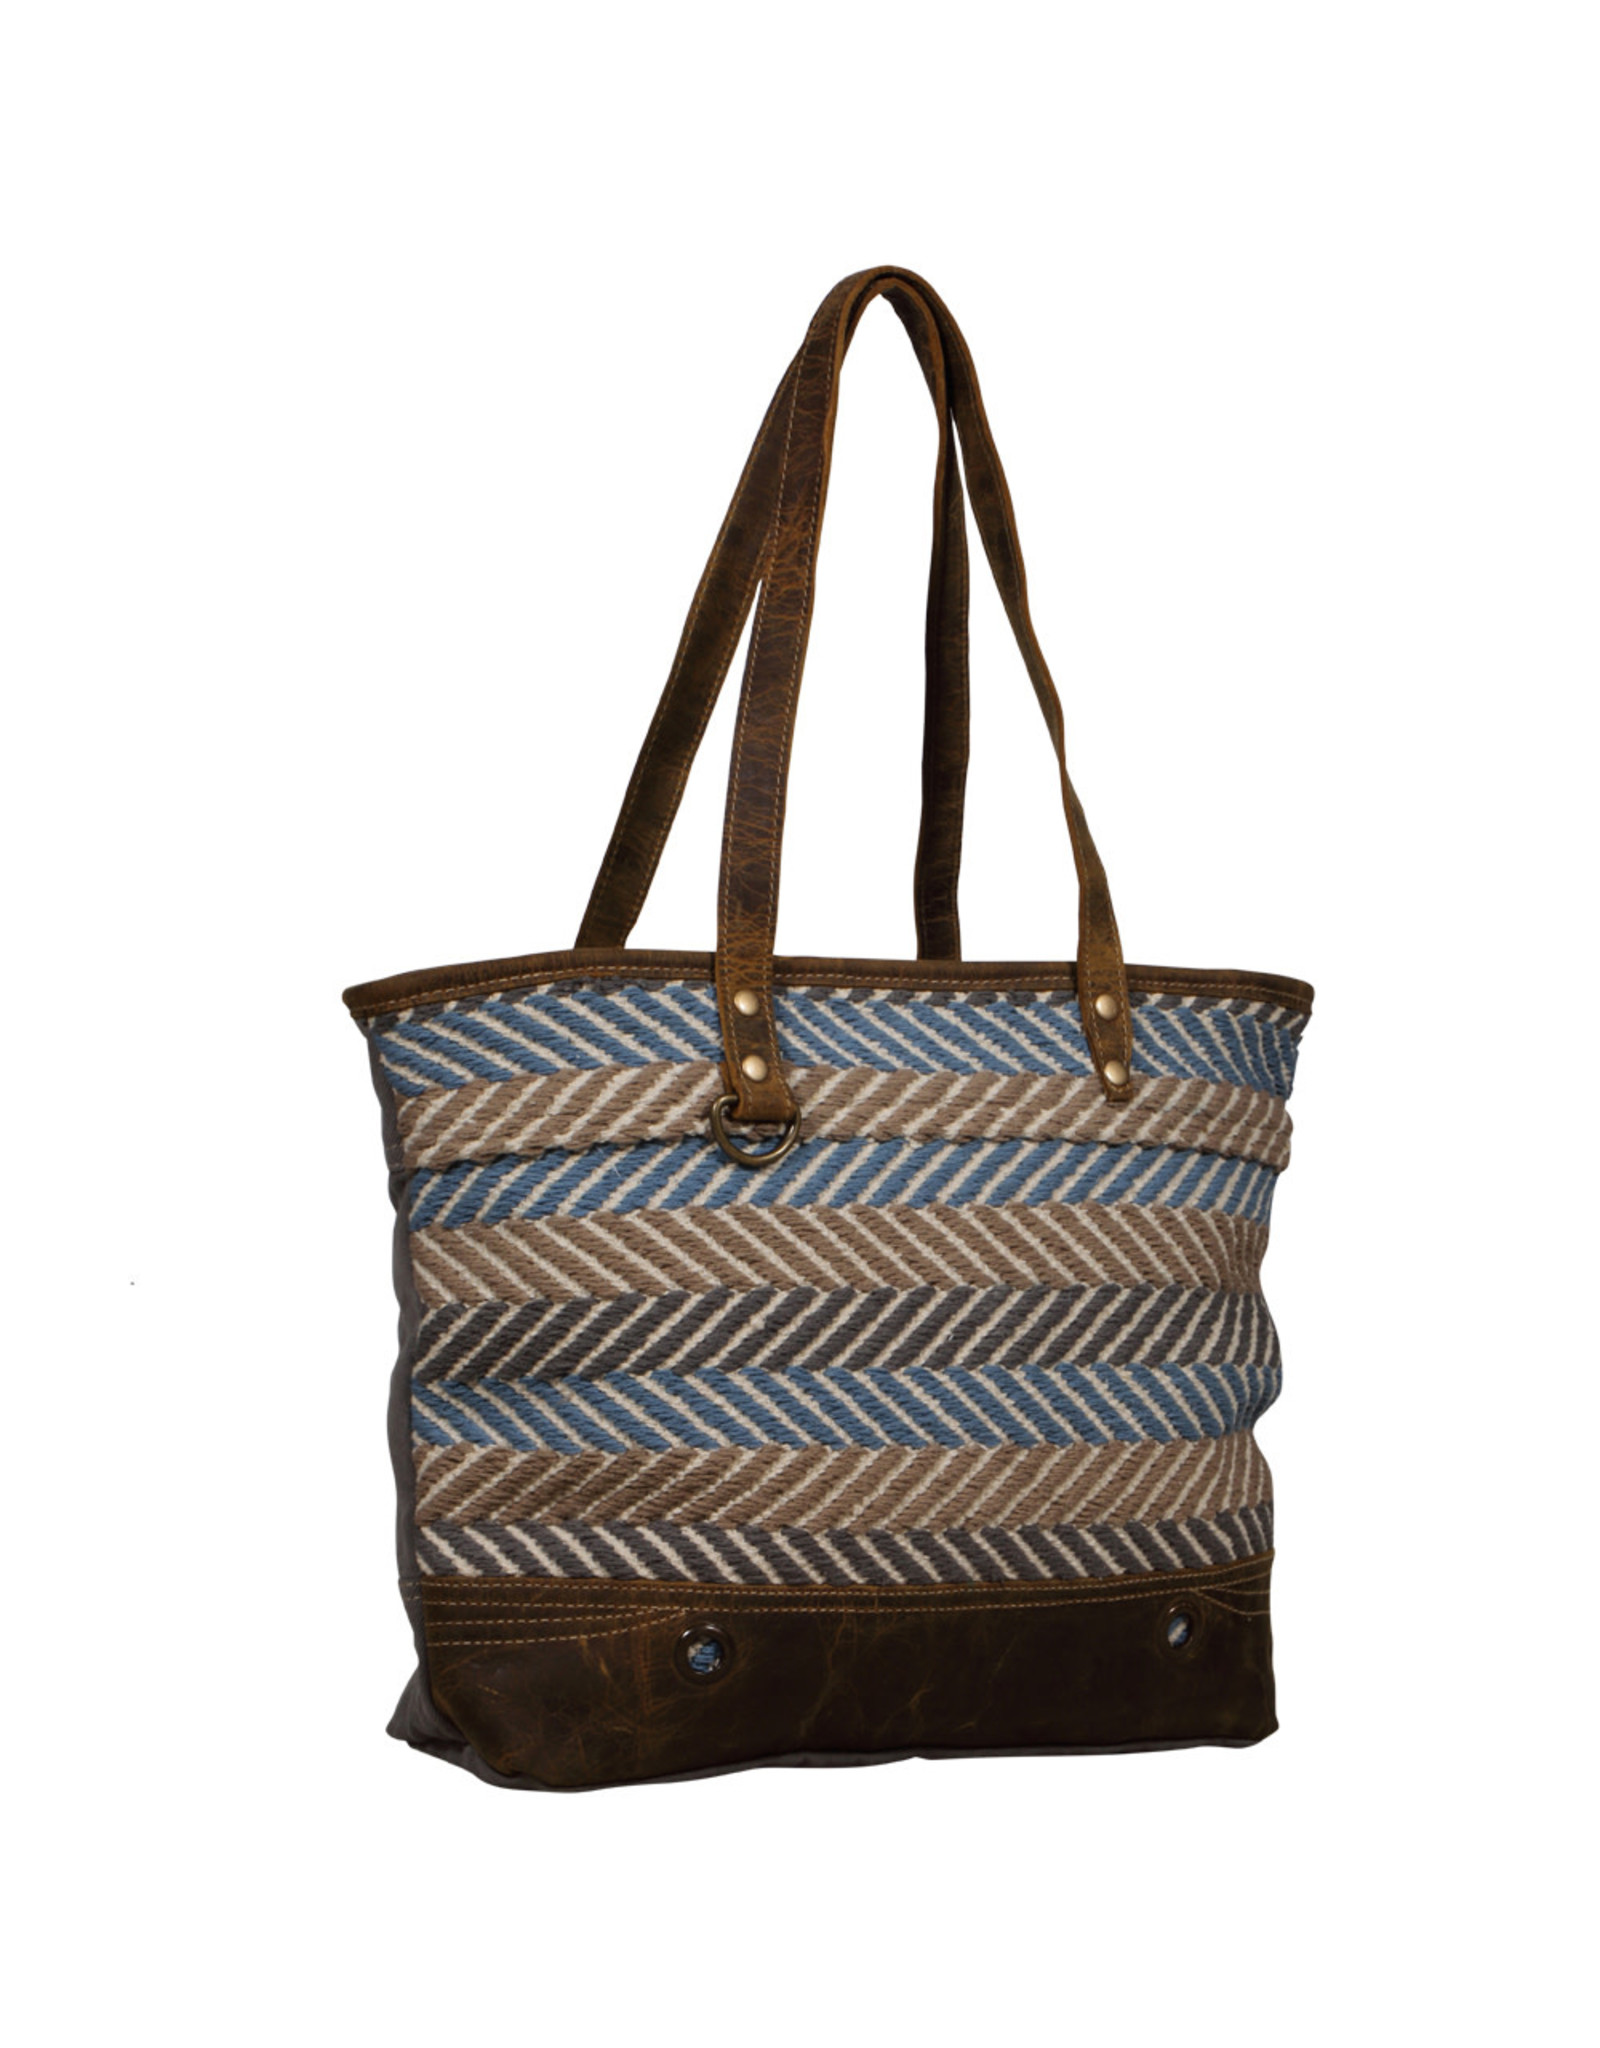 S 2109 Extravagant Tote Bag Myra provides a wide range of canvas, leather & hair on products. myra bags s 2109 extravagant tote bag